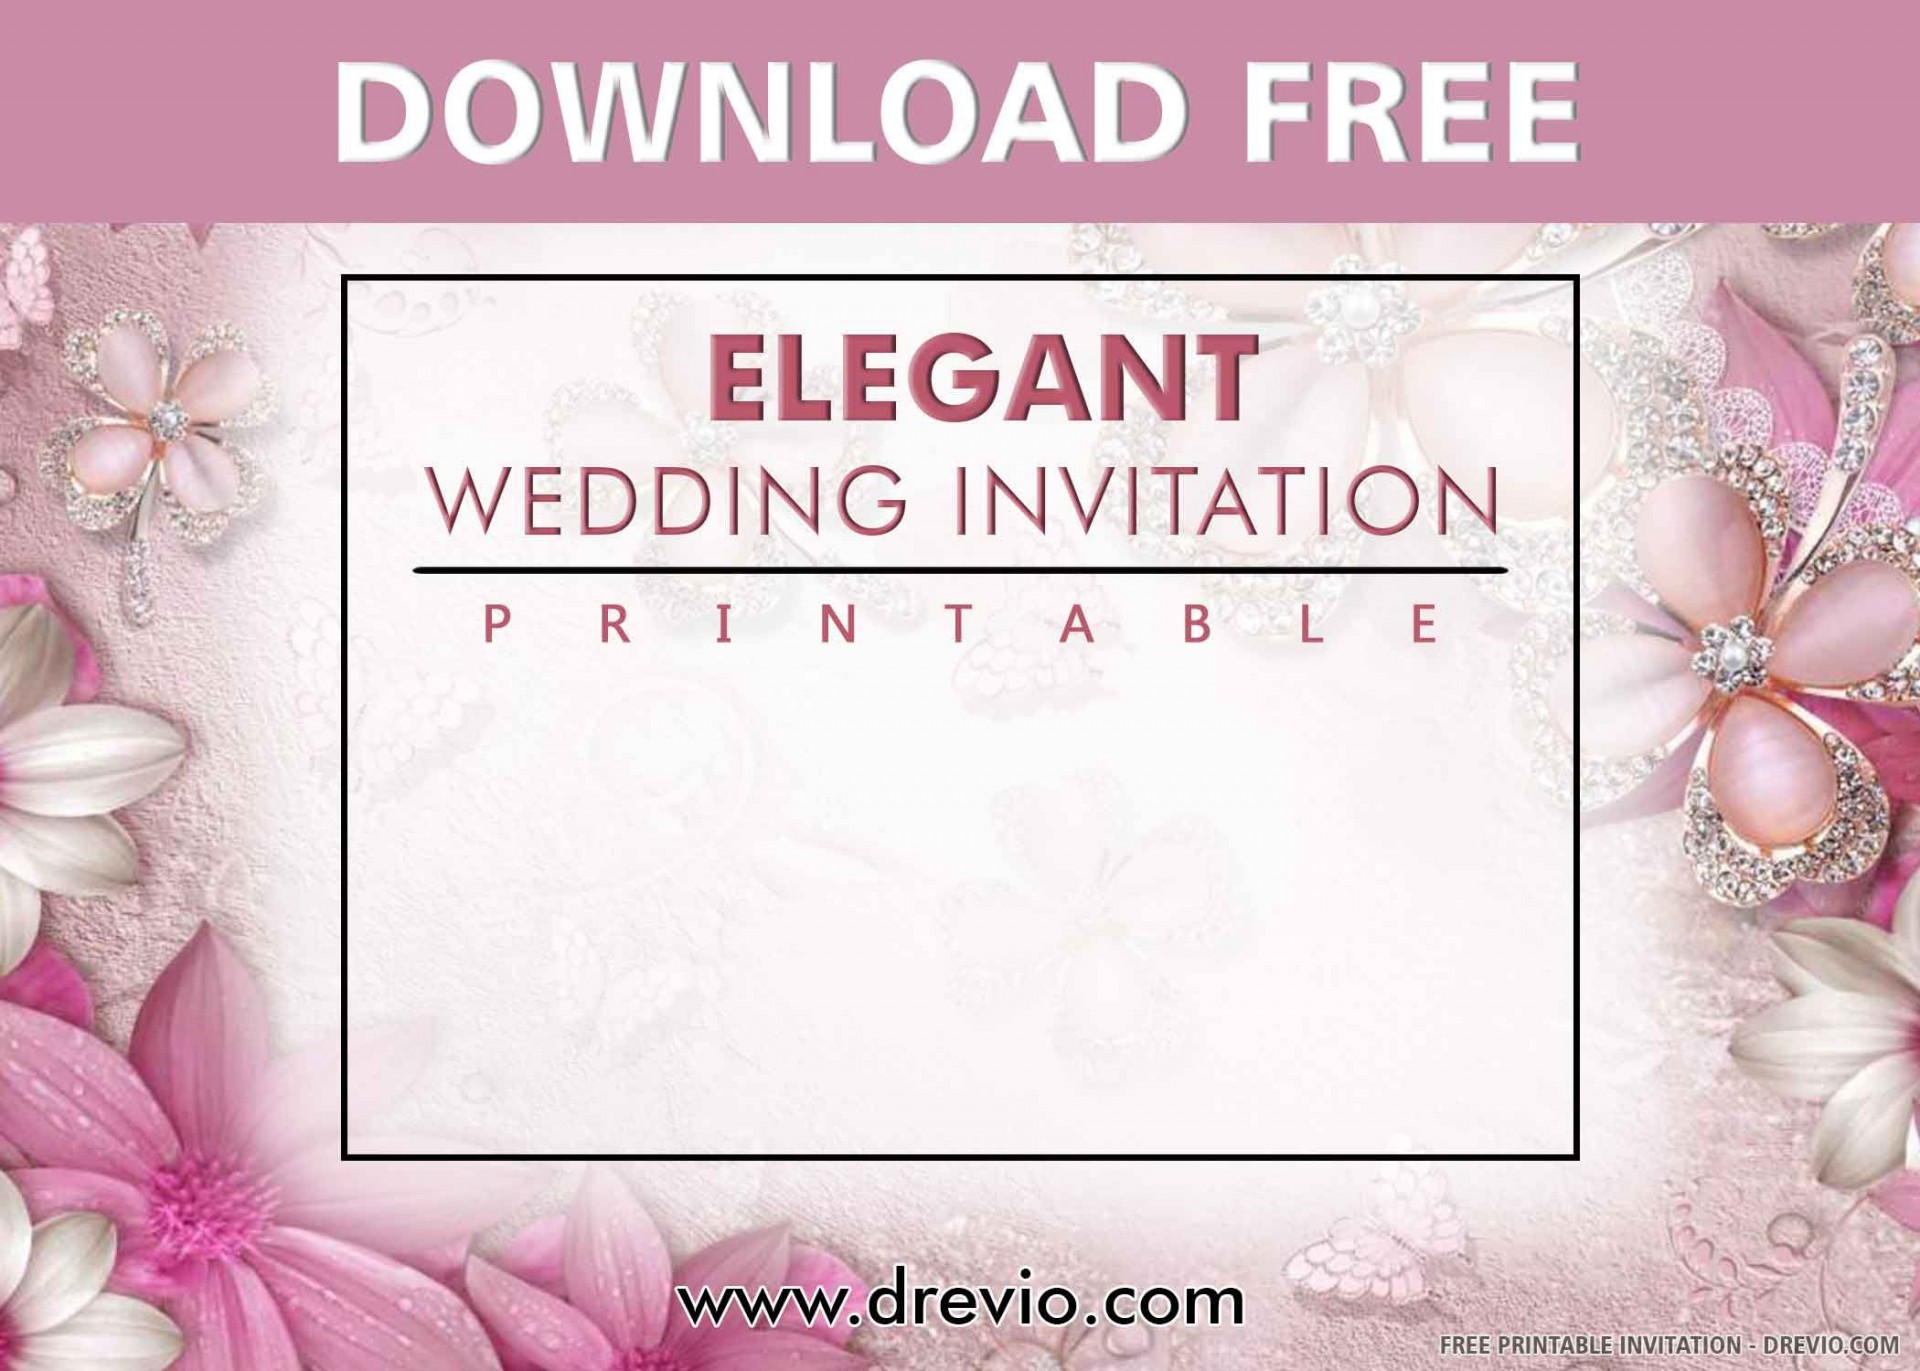 006 Remarkable Free Wedding Invitation Template Printable Highest Clarity  For Microsoft Word Mac1920